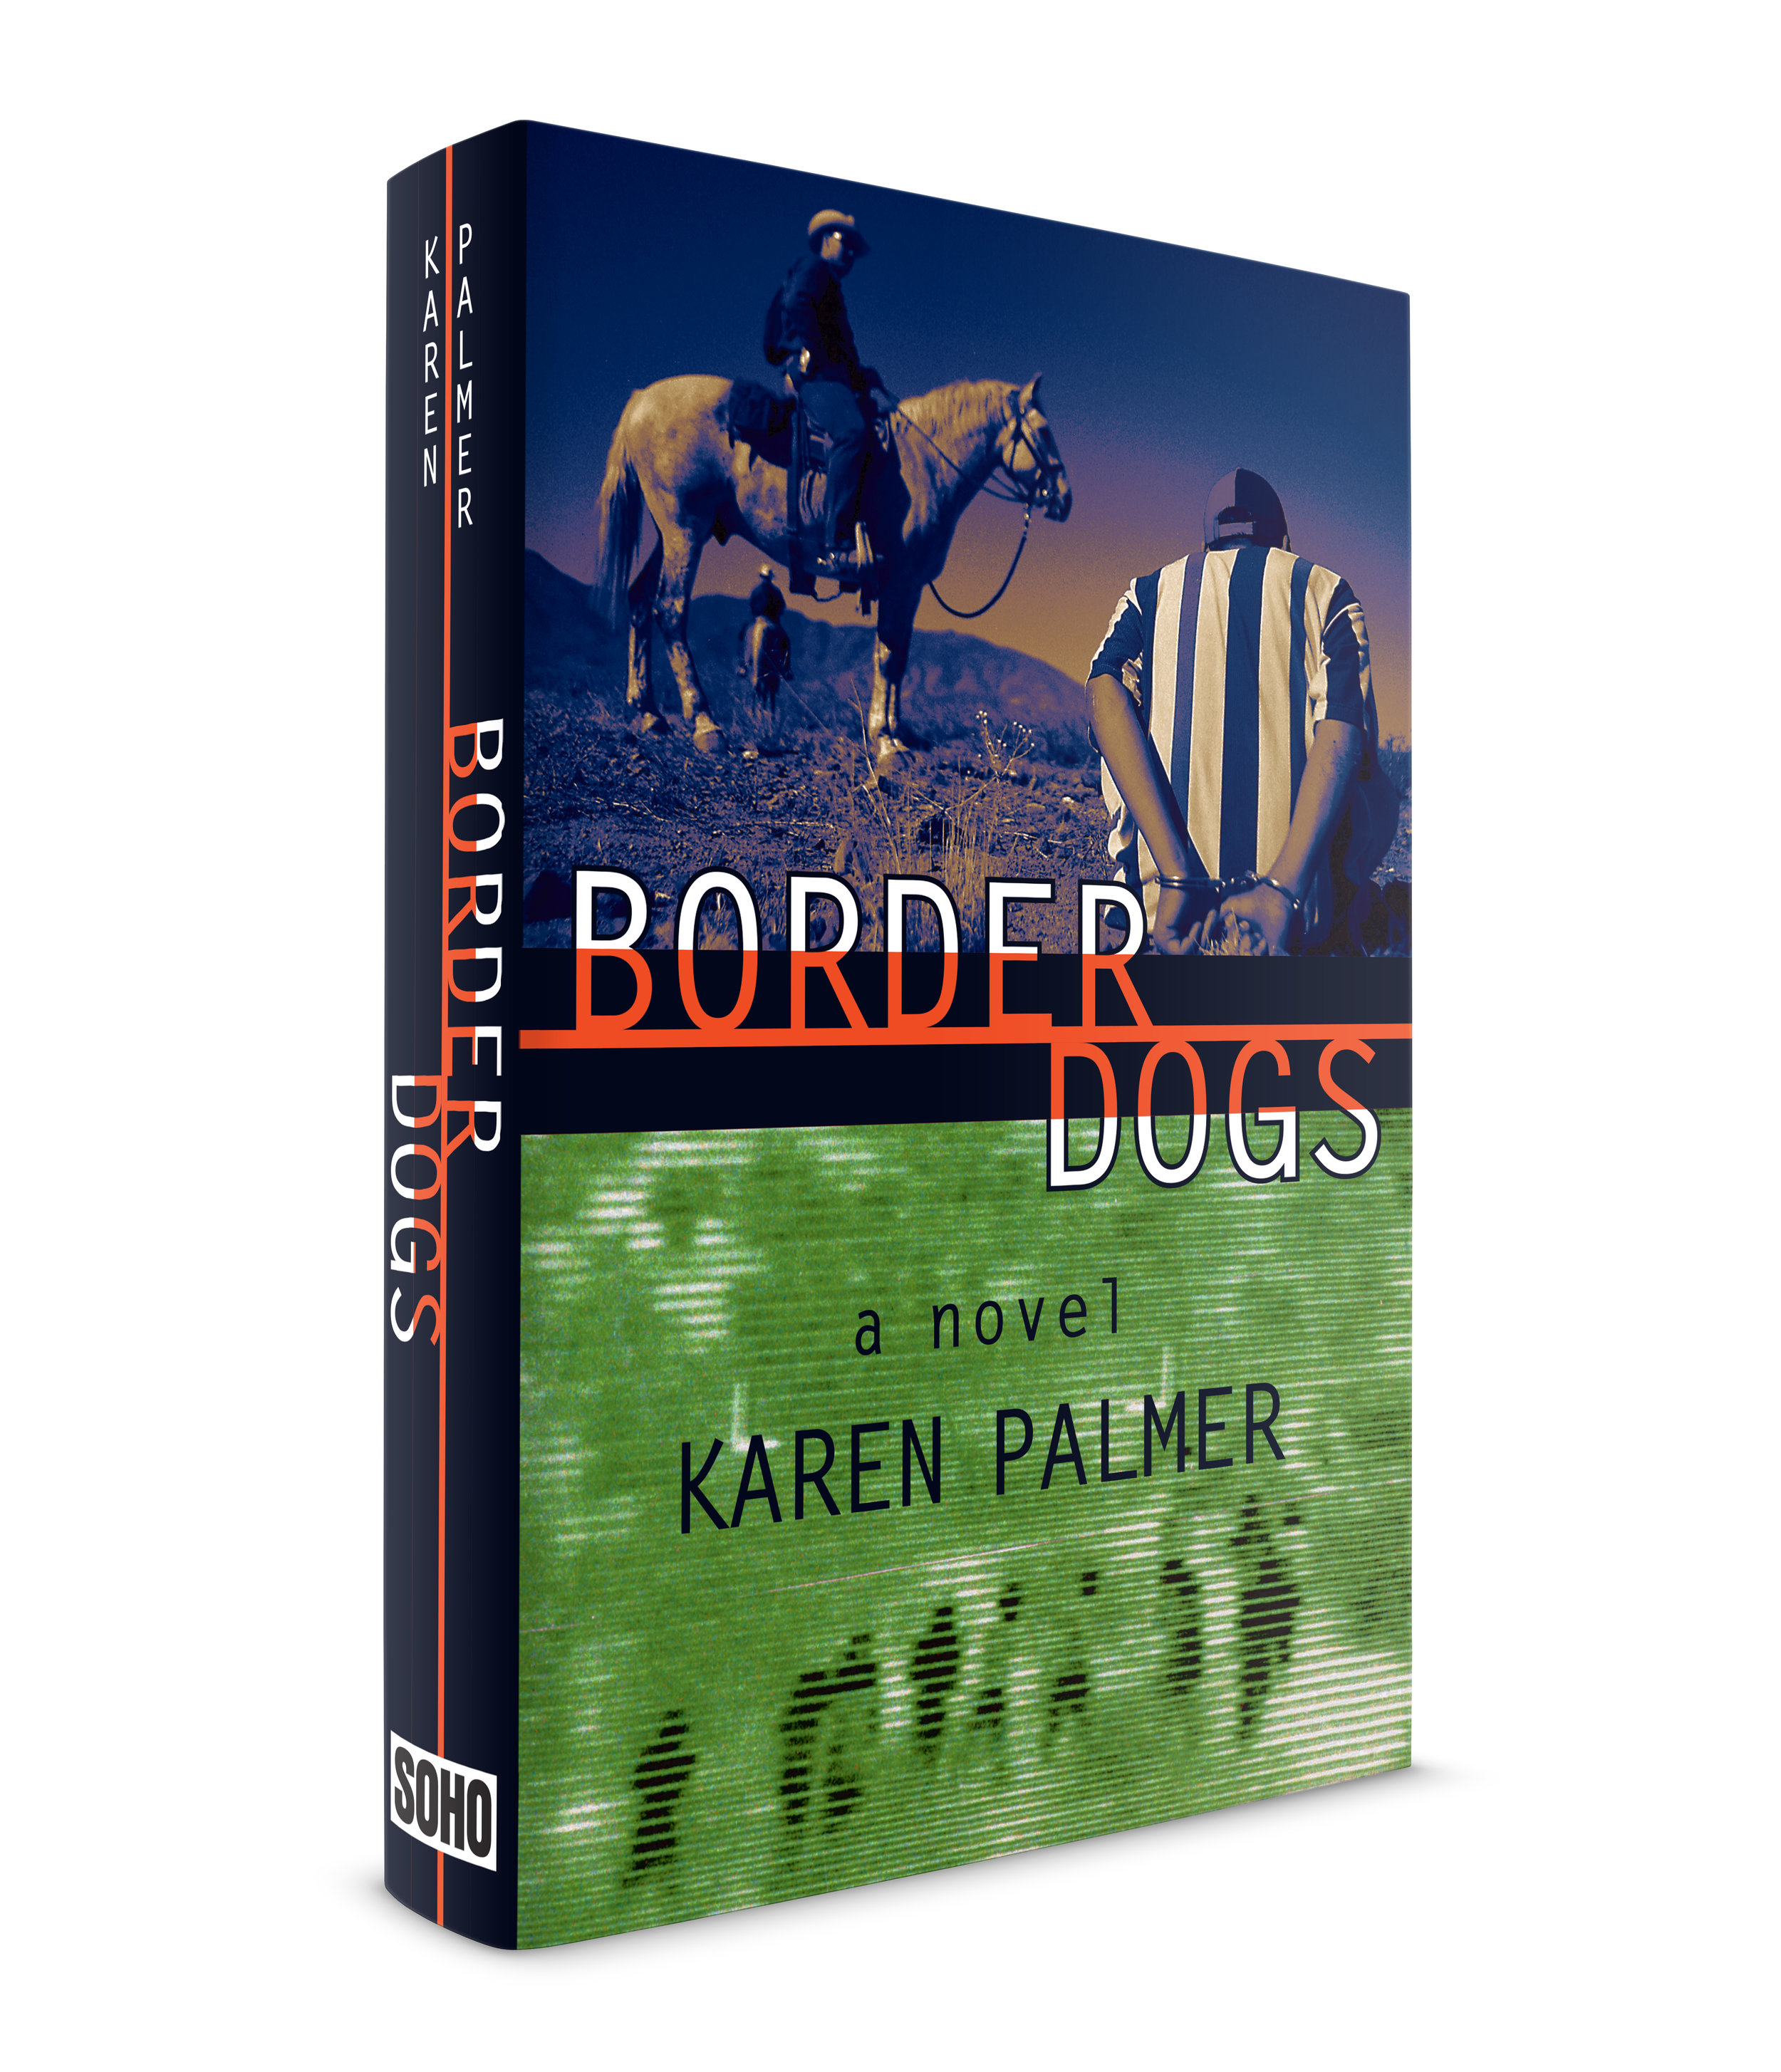 """Border Dogs. A novel by  Karen Palmer . Published by Soho Press. This is the second book by Karen Palmer that I was brought in to design the jacket for. Another wonderful novel. The protagonist is a border patrol officer in the south east California desert who works on horseback (quieter than jeeps) searching for illegals crossing over. He was adopted as a child and has high cheekbones for a white man. Word comes to him on the death of his birth mother and what he finds out puts him in the position of having two allegiances.  I decided to not go symbolic on the cover but wanted to explore the actual scenes of arrests on the border and images of people crossing if I could find them. I managed to locate a photographer (Jeffrey Scott) for a small newspaper in Nevada I think it was. He had accompanied officers on crossing arrests. He was surprised when I called him. """"You want pictures for what??"""" He sent me hundreds of photos of actual border captures as well as infrared images (border patrol use these at night) of illegals crossing at night. These photos captured, if I remember correctly, certain scenes in the book very accurately."""